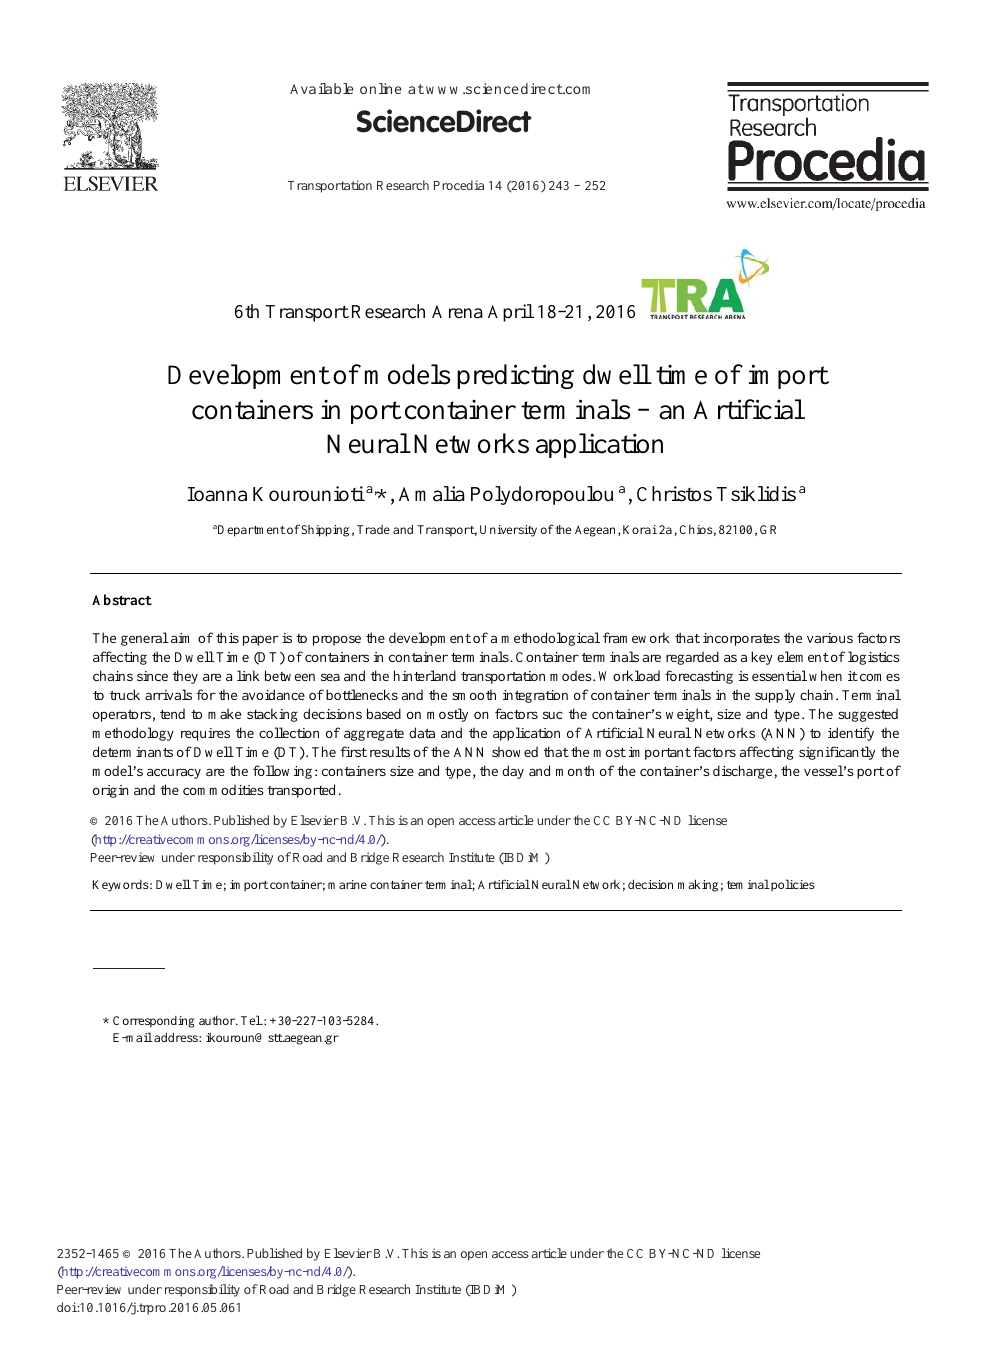 Development of Models Predicting Dwell Time of Import